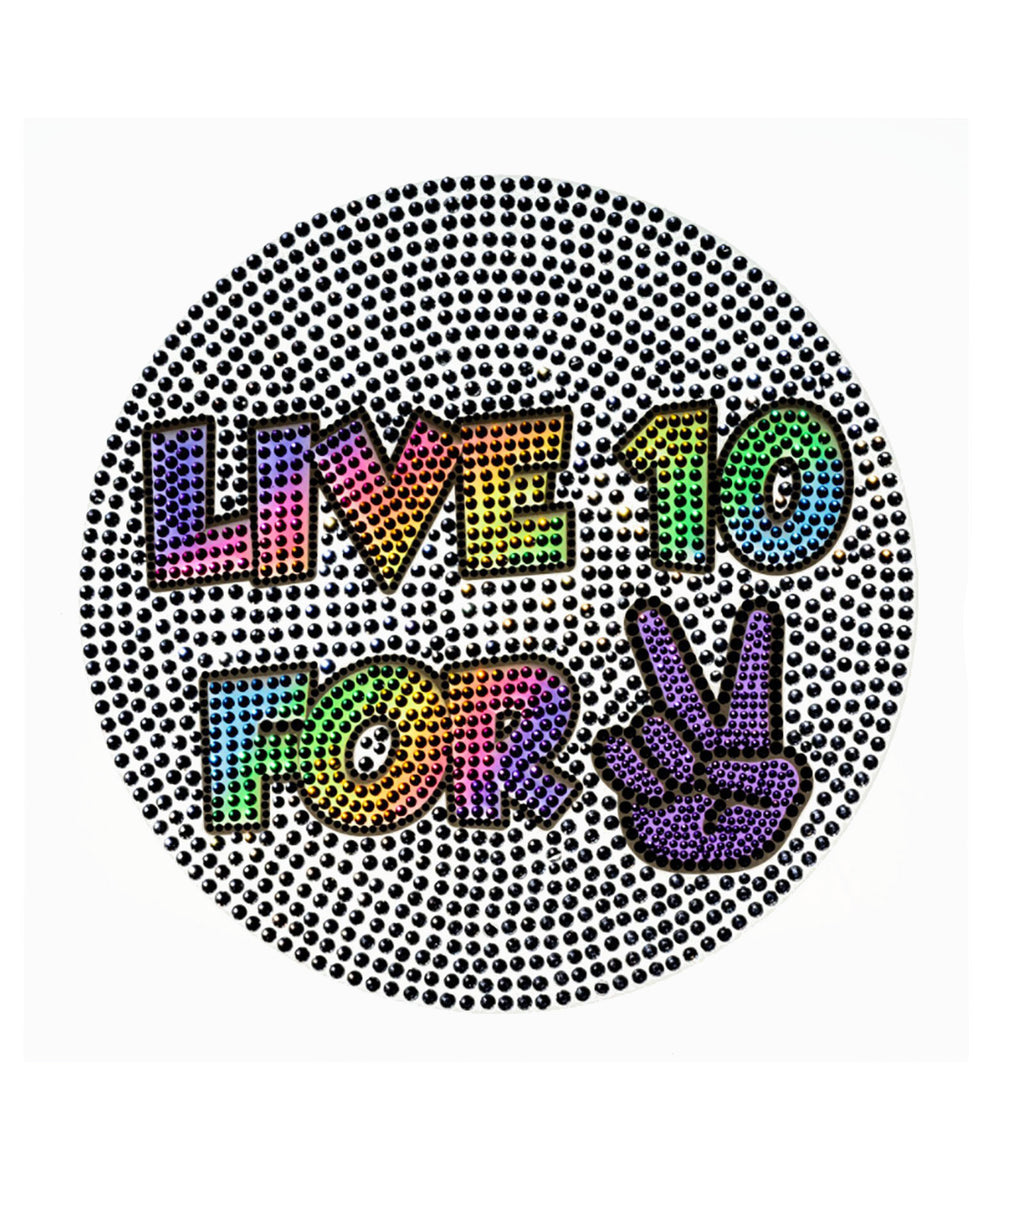 Sticker Beans 8 Inch Live 10 for 2